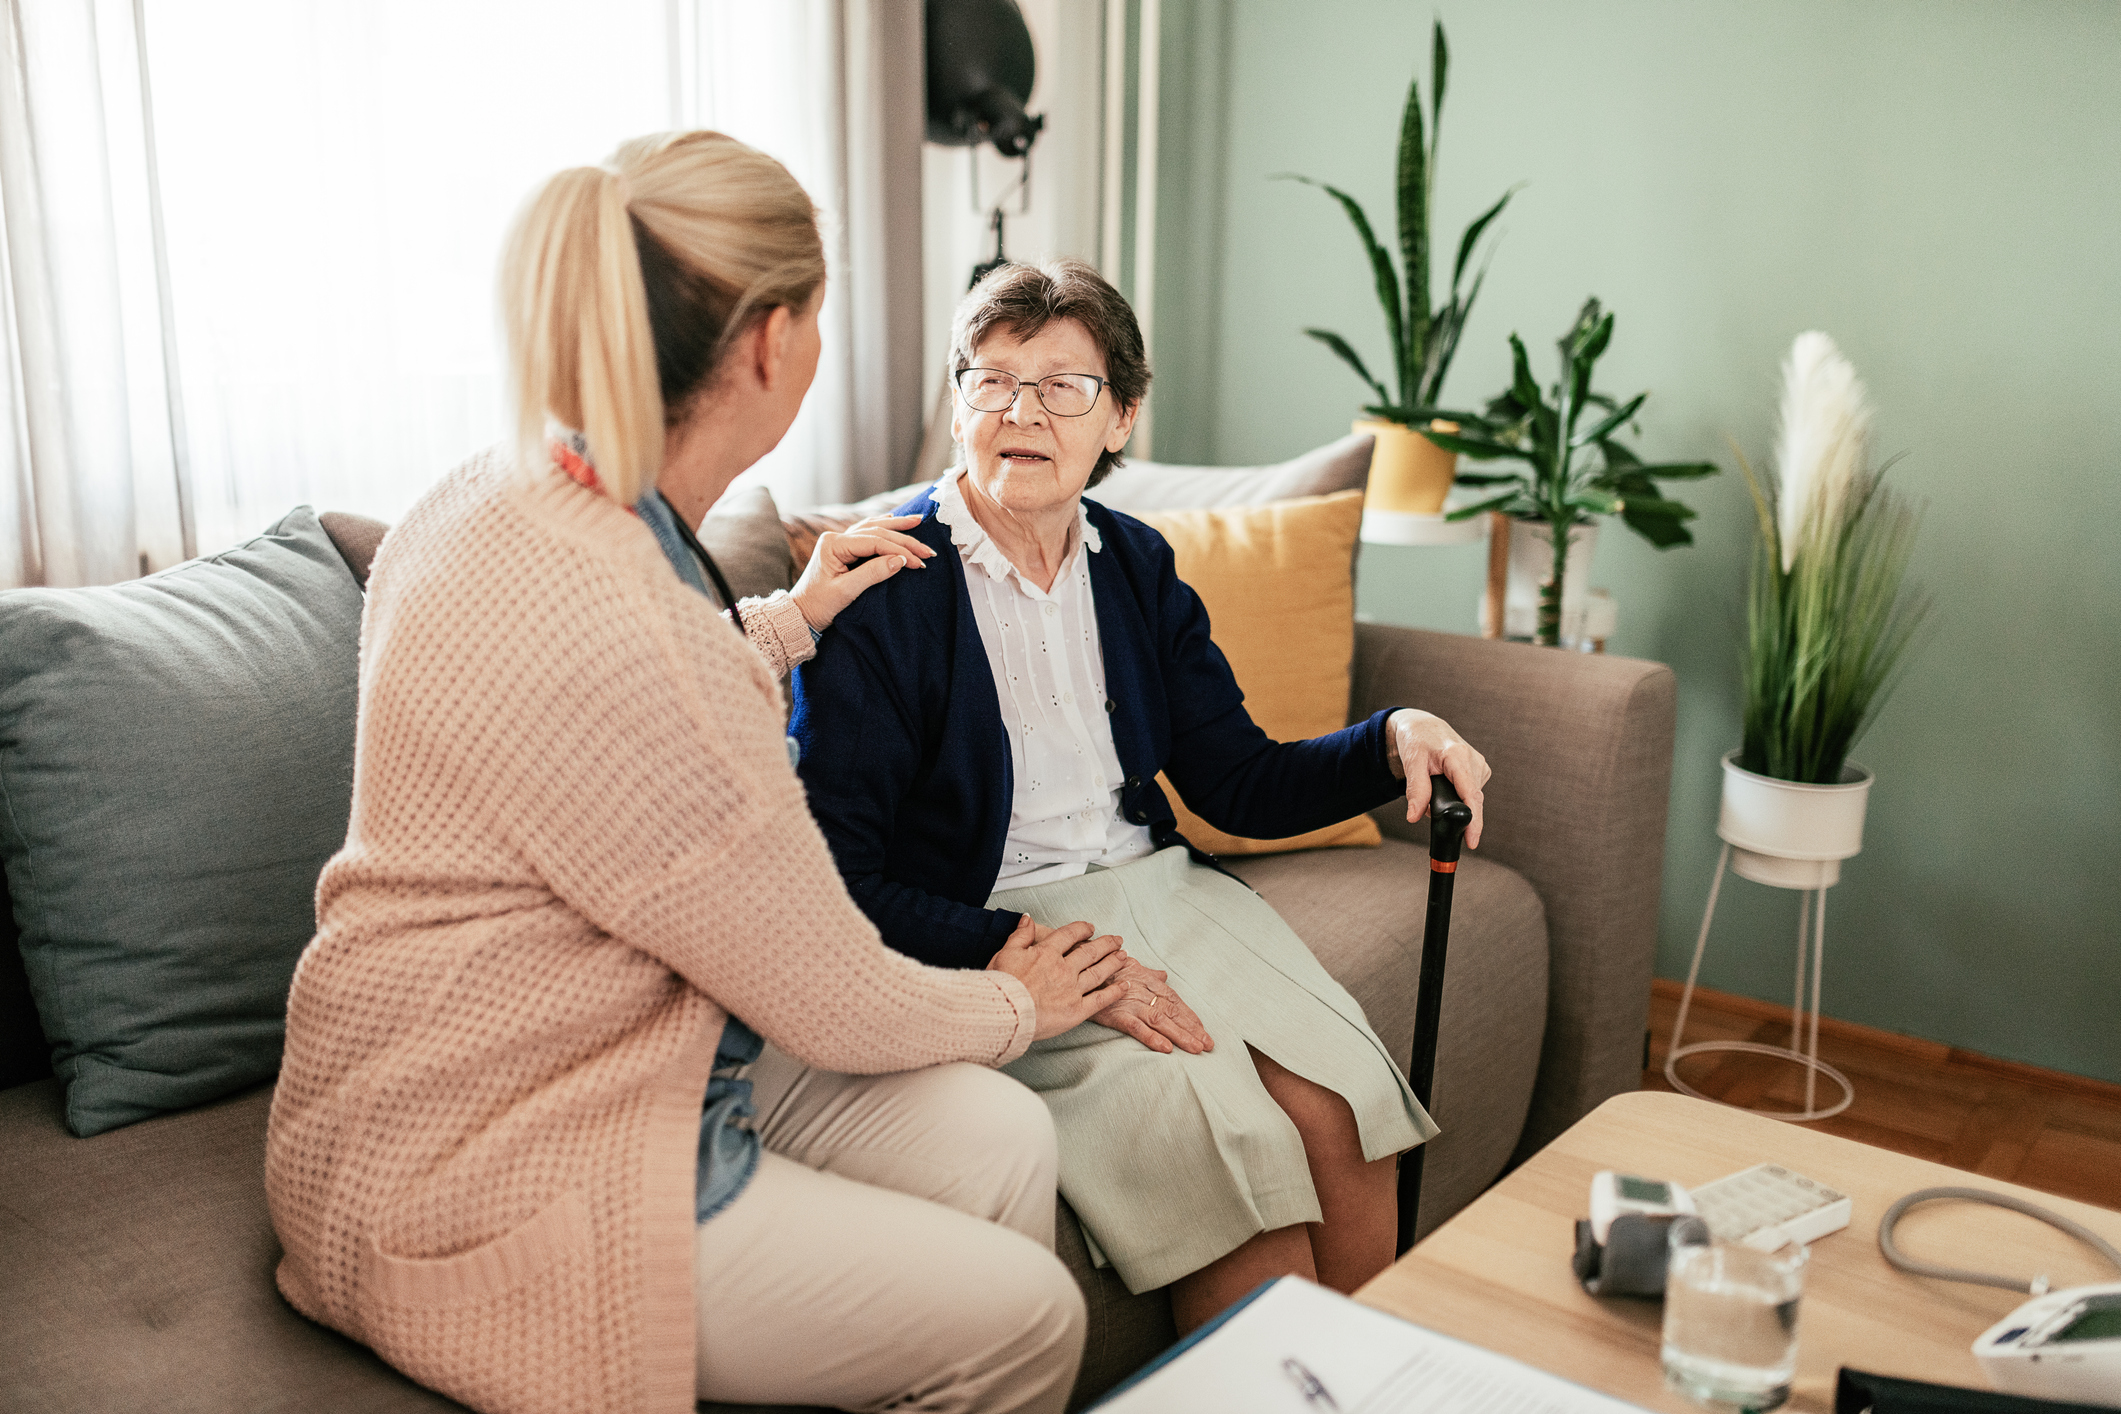 Managing long-term conditions with home health care services helps seniors maintain independence.